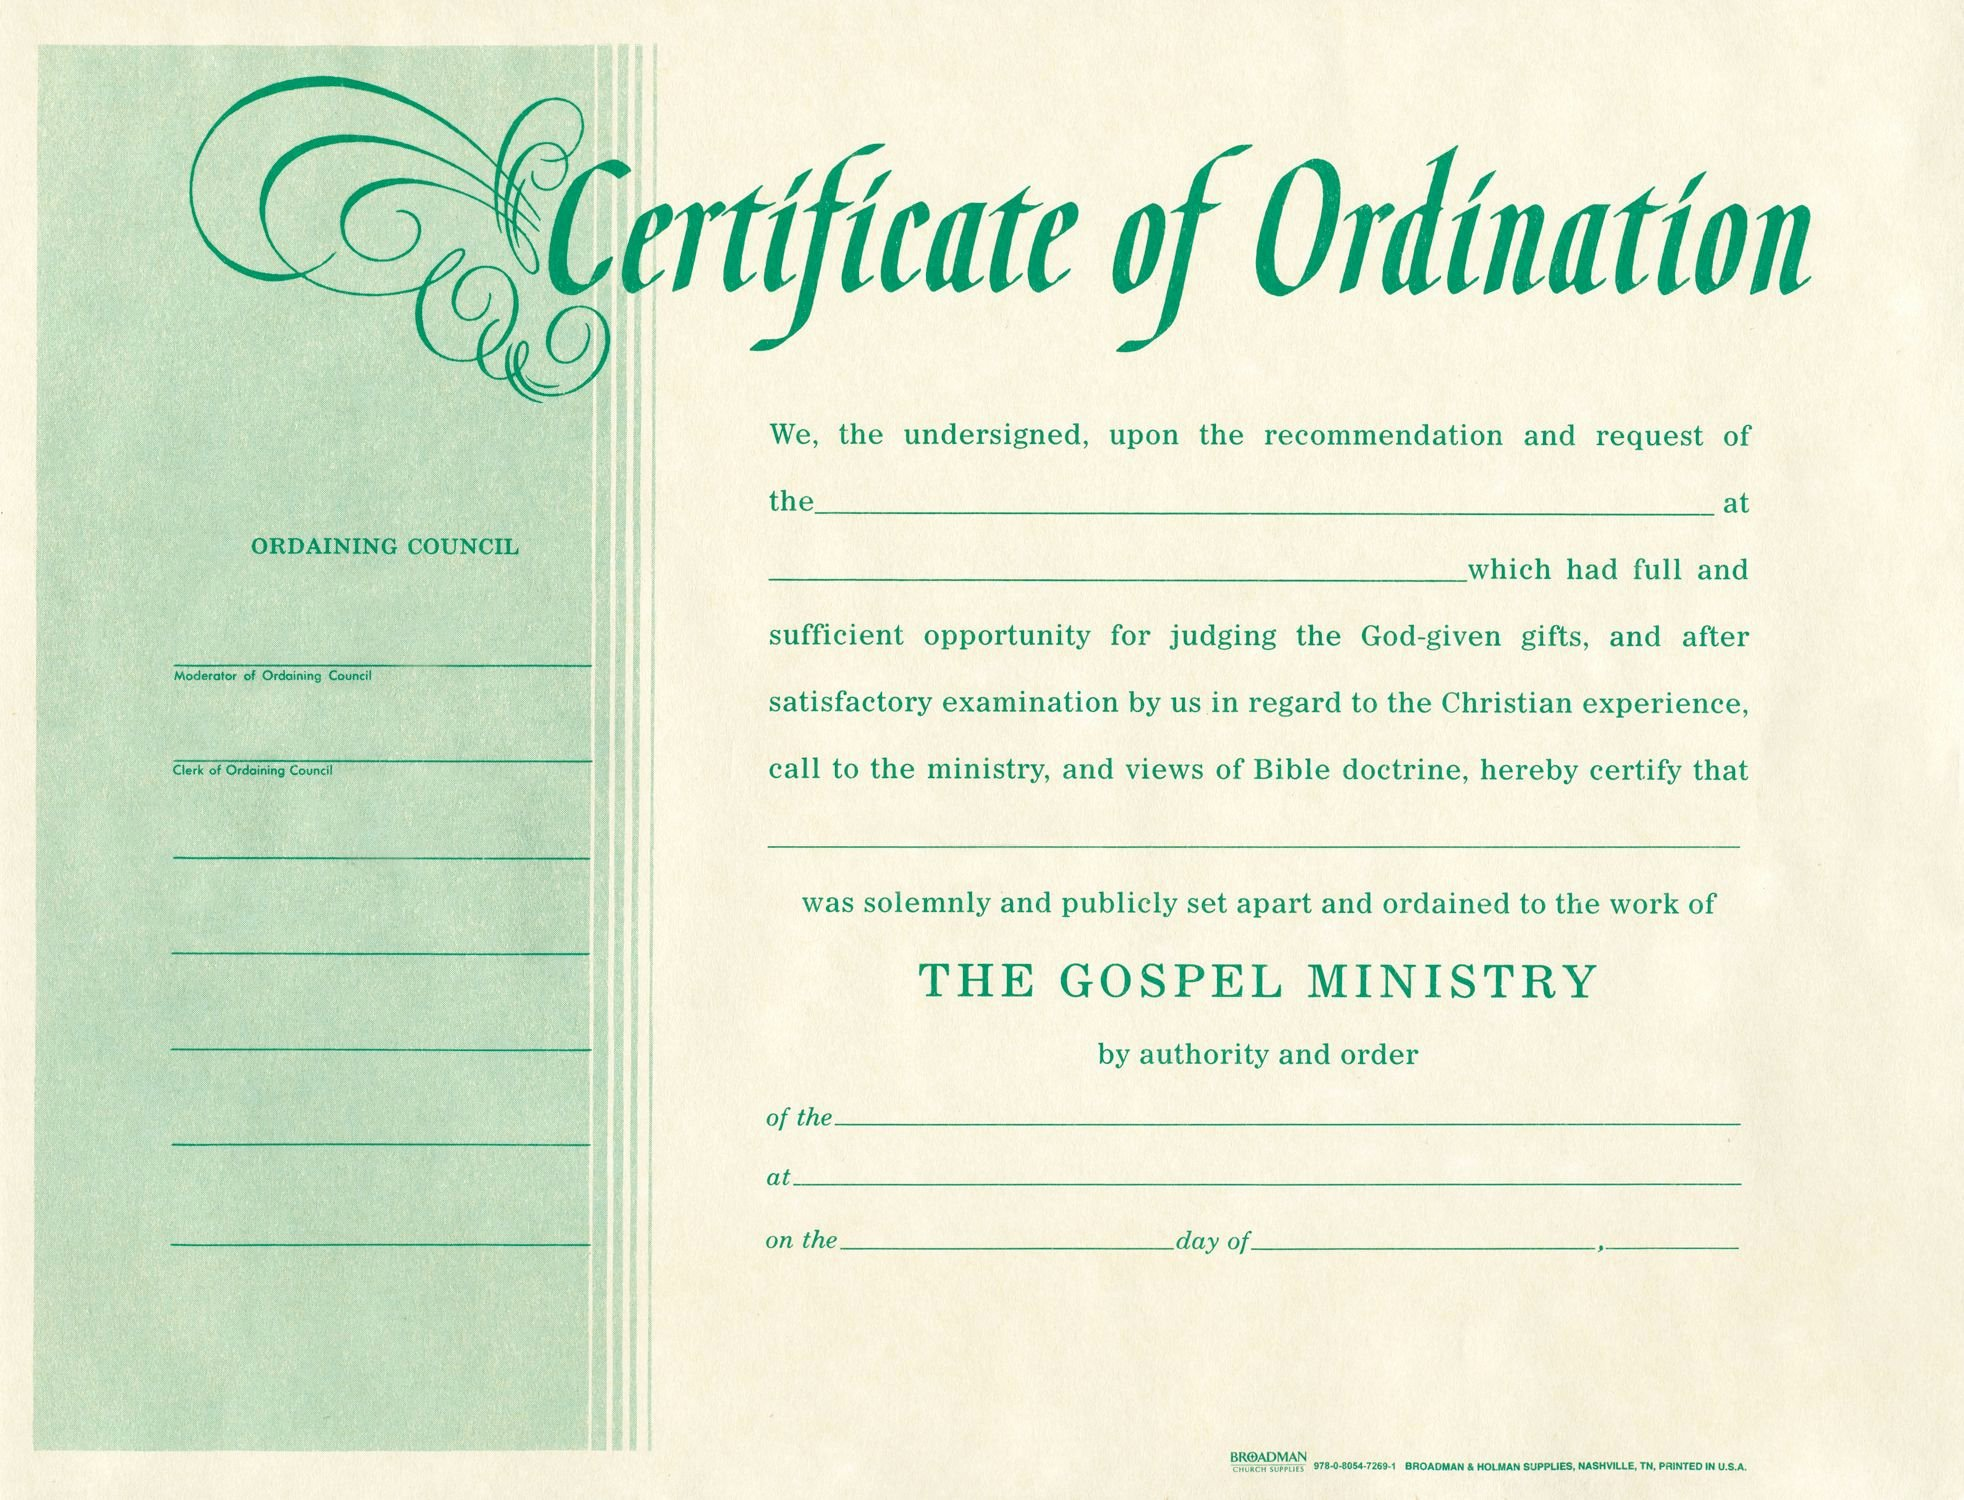 Certificate Of ordination Template New Free Blank Certificate ordination